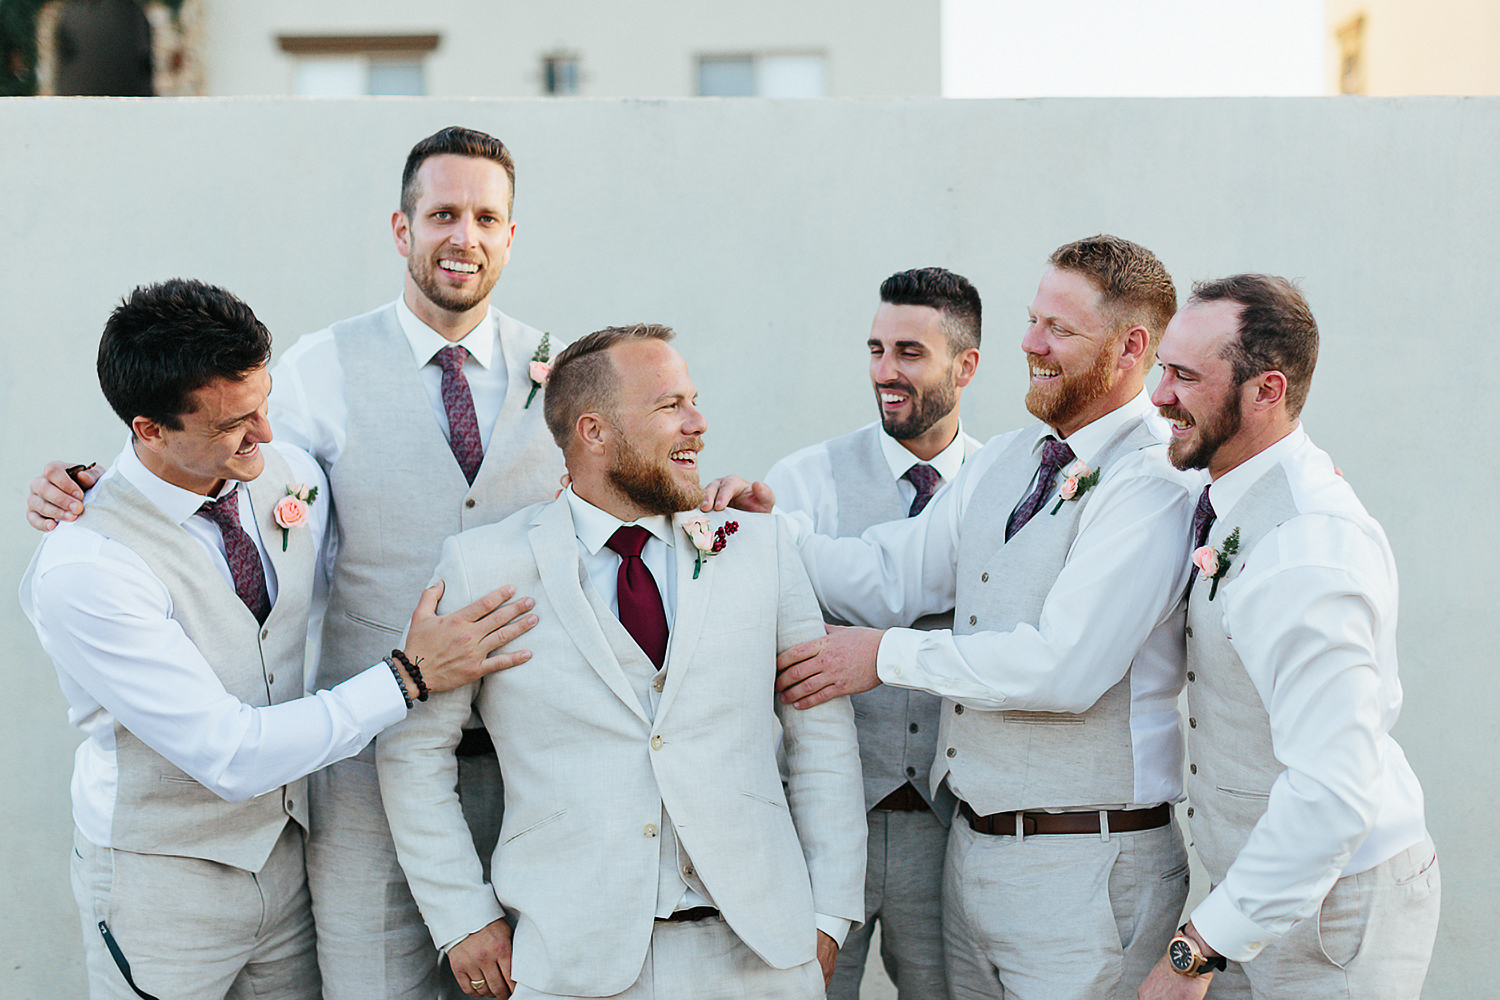 cabo-san-lucas-wedding-travelling-destination-wedding-photographer-toronto-wedding-photographers-3b-photography-hipster-trendy-documentary-style-mexico-wedding-bridal-party-portraits-groomsmen-indochino-moores-suits-cute-candid.jpg